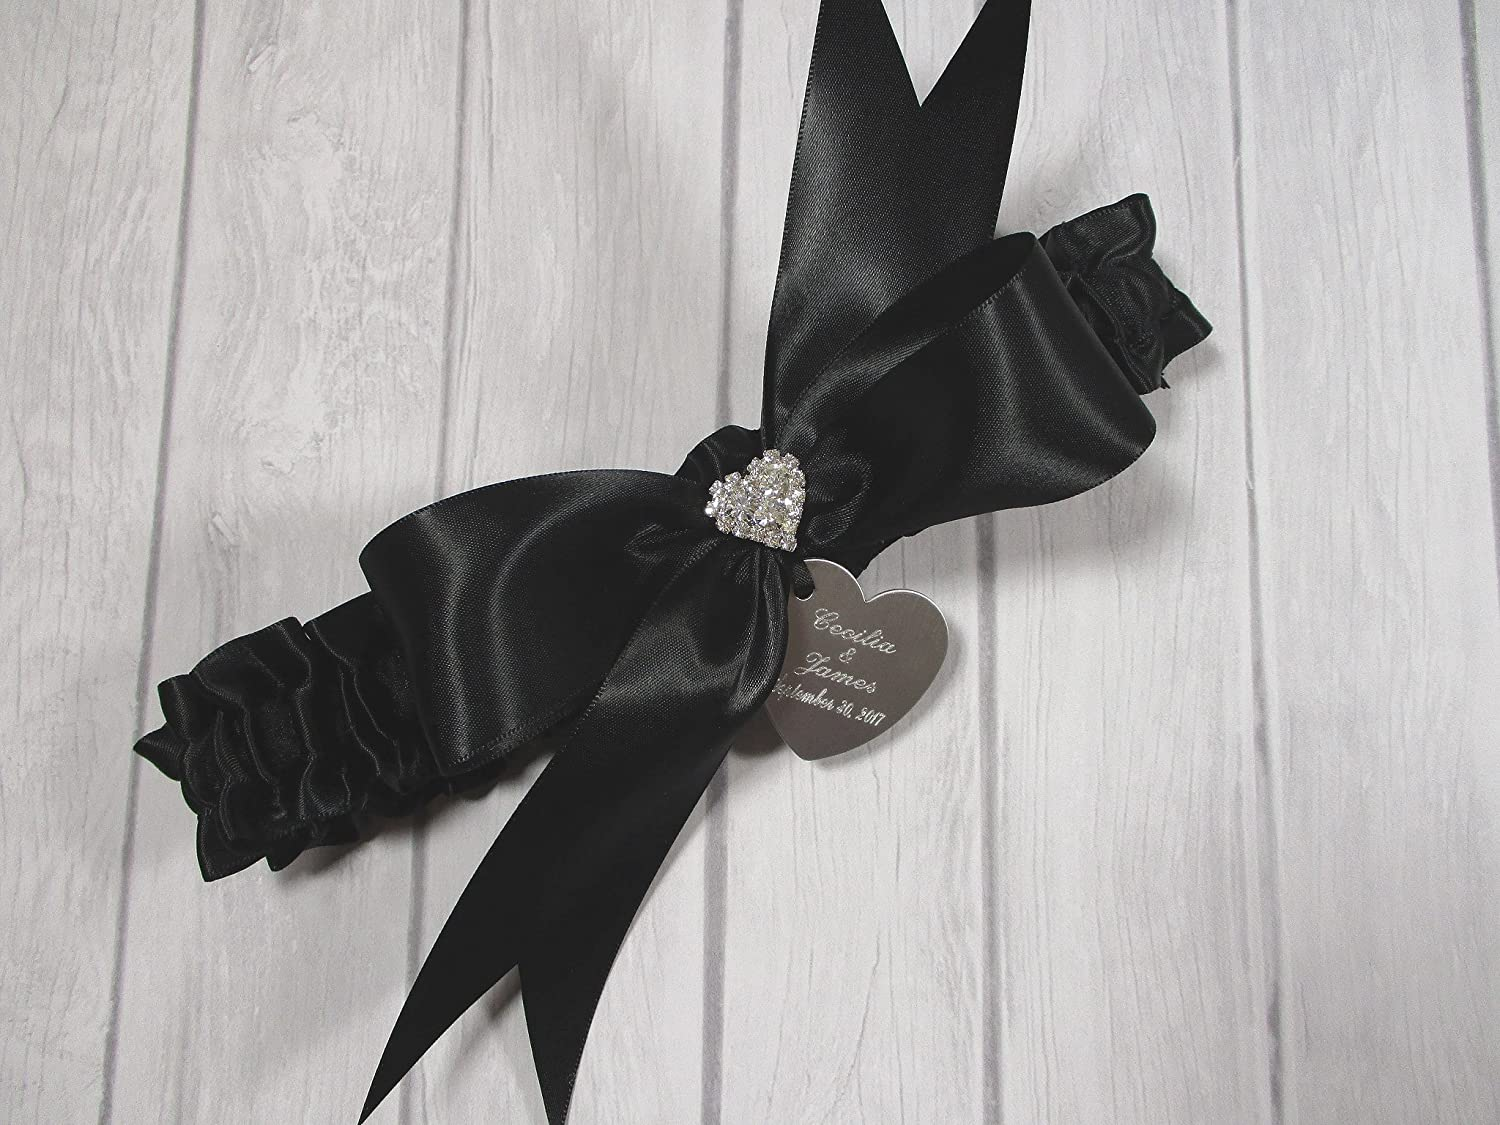 Black Wedding Garter Set with Rhinestone Hearts and Personalized Engraving